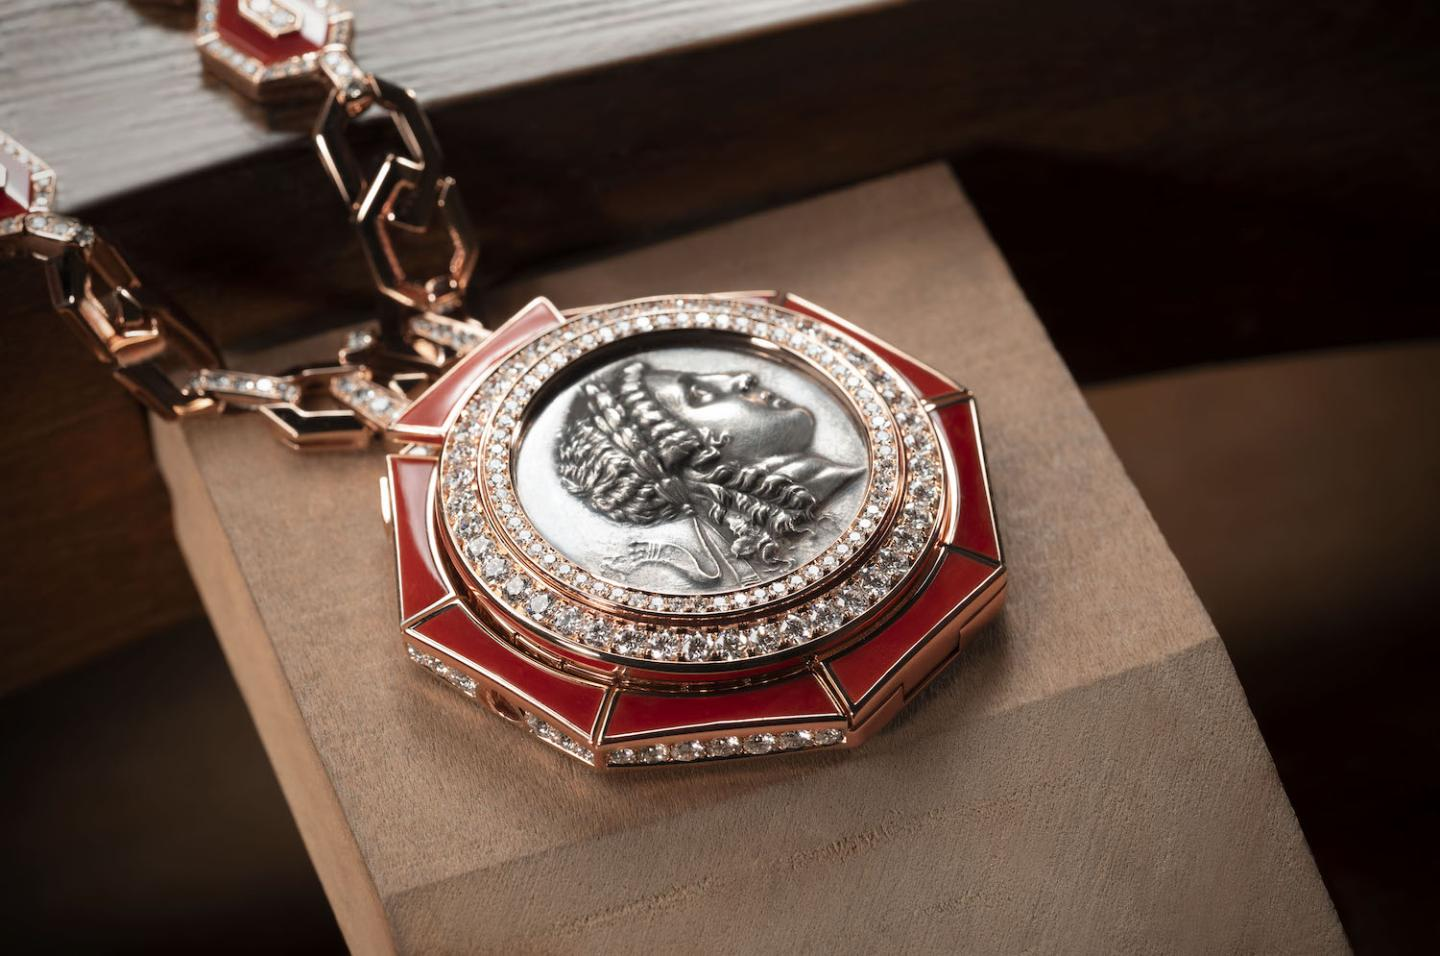 The chain, the watch bezel and dial of this new Monete pendant watch are set with elements made from hand-cut rubrum coral from Sardinia, and brilliant-cut diamonds.